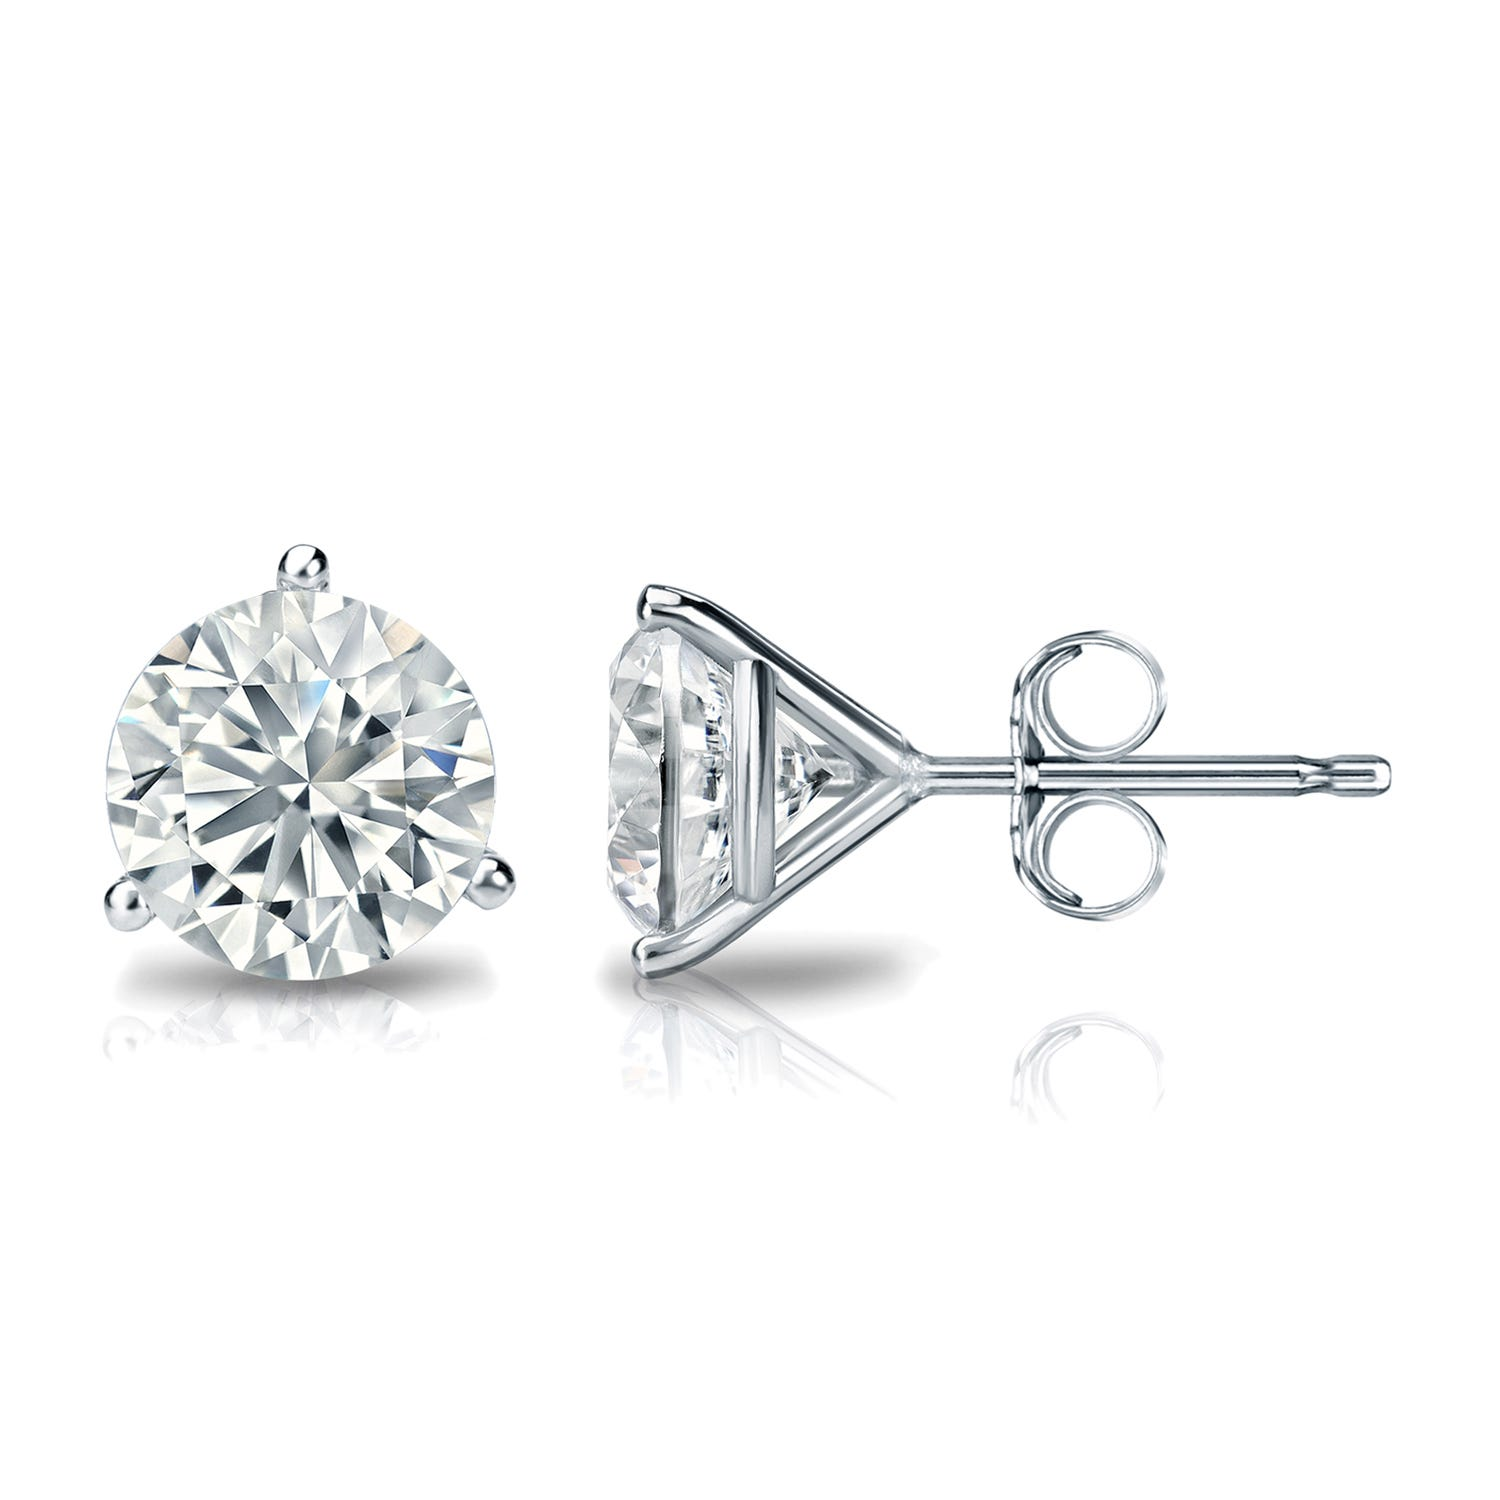 1-1/2 CTTW Round Diamond Solitaire Stud Earrings IJ I2 in 10K White Gold IGI Certified 3-Prong Setting